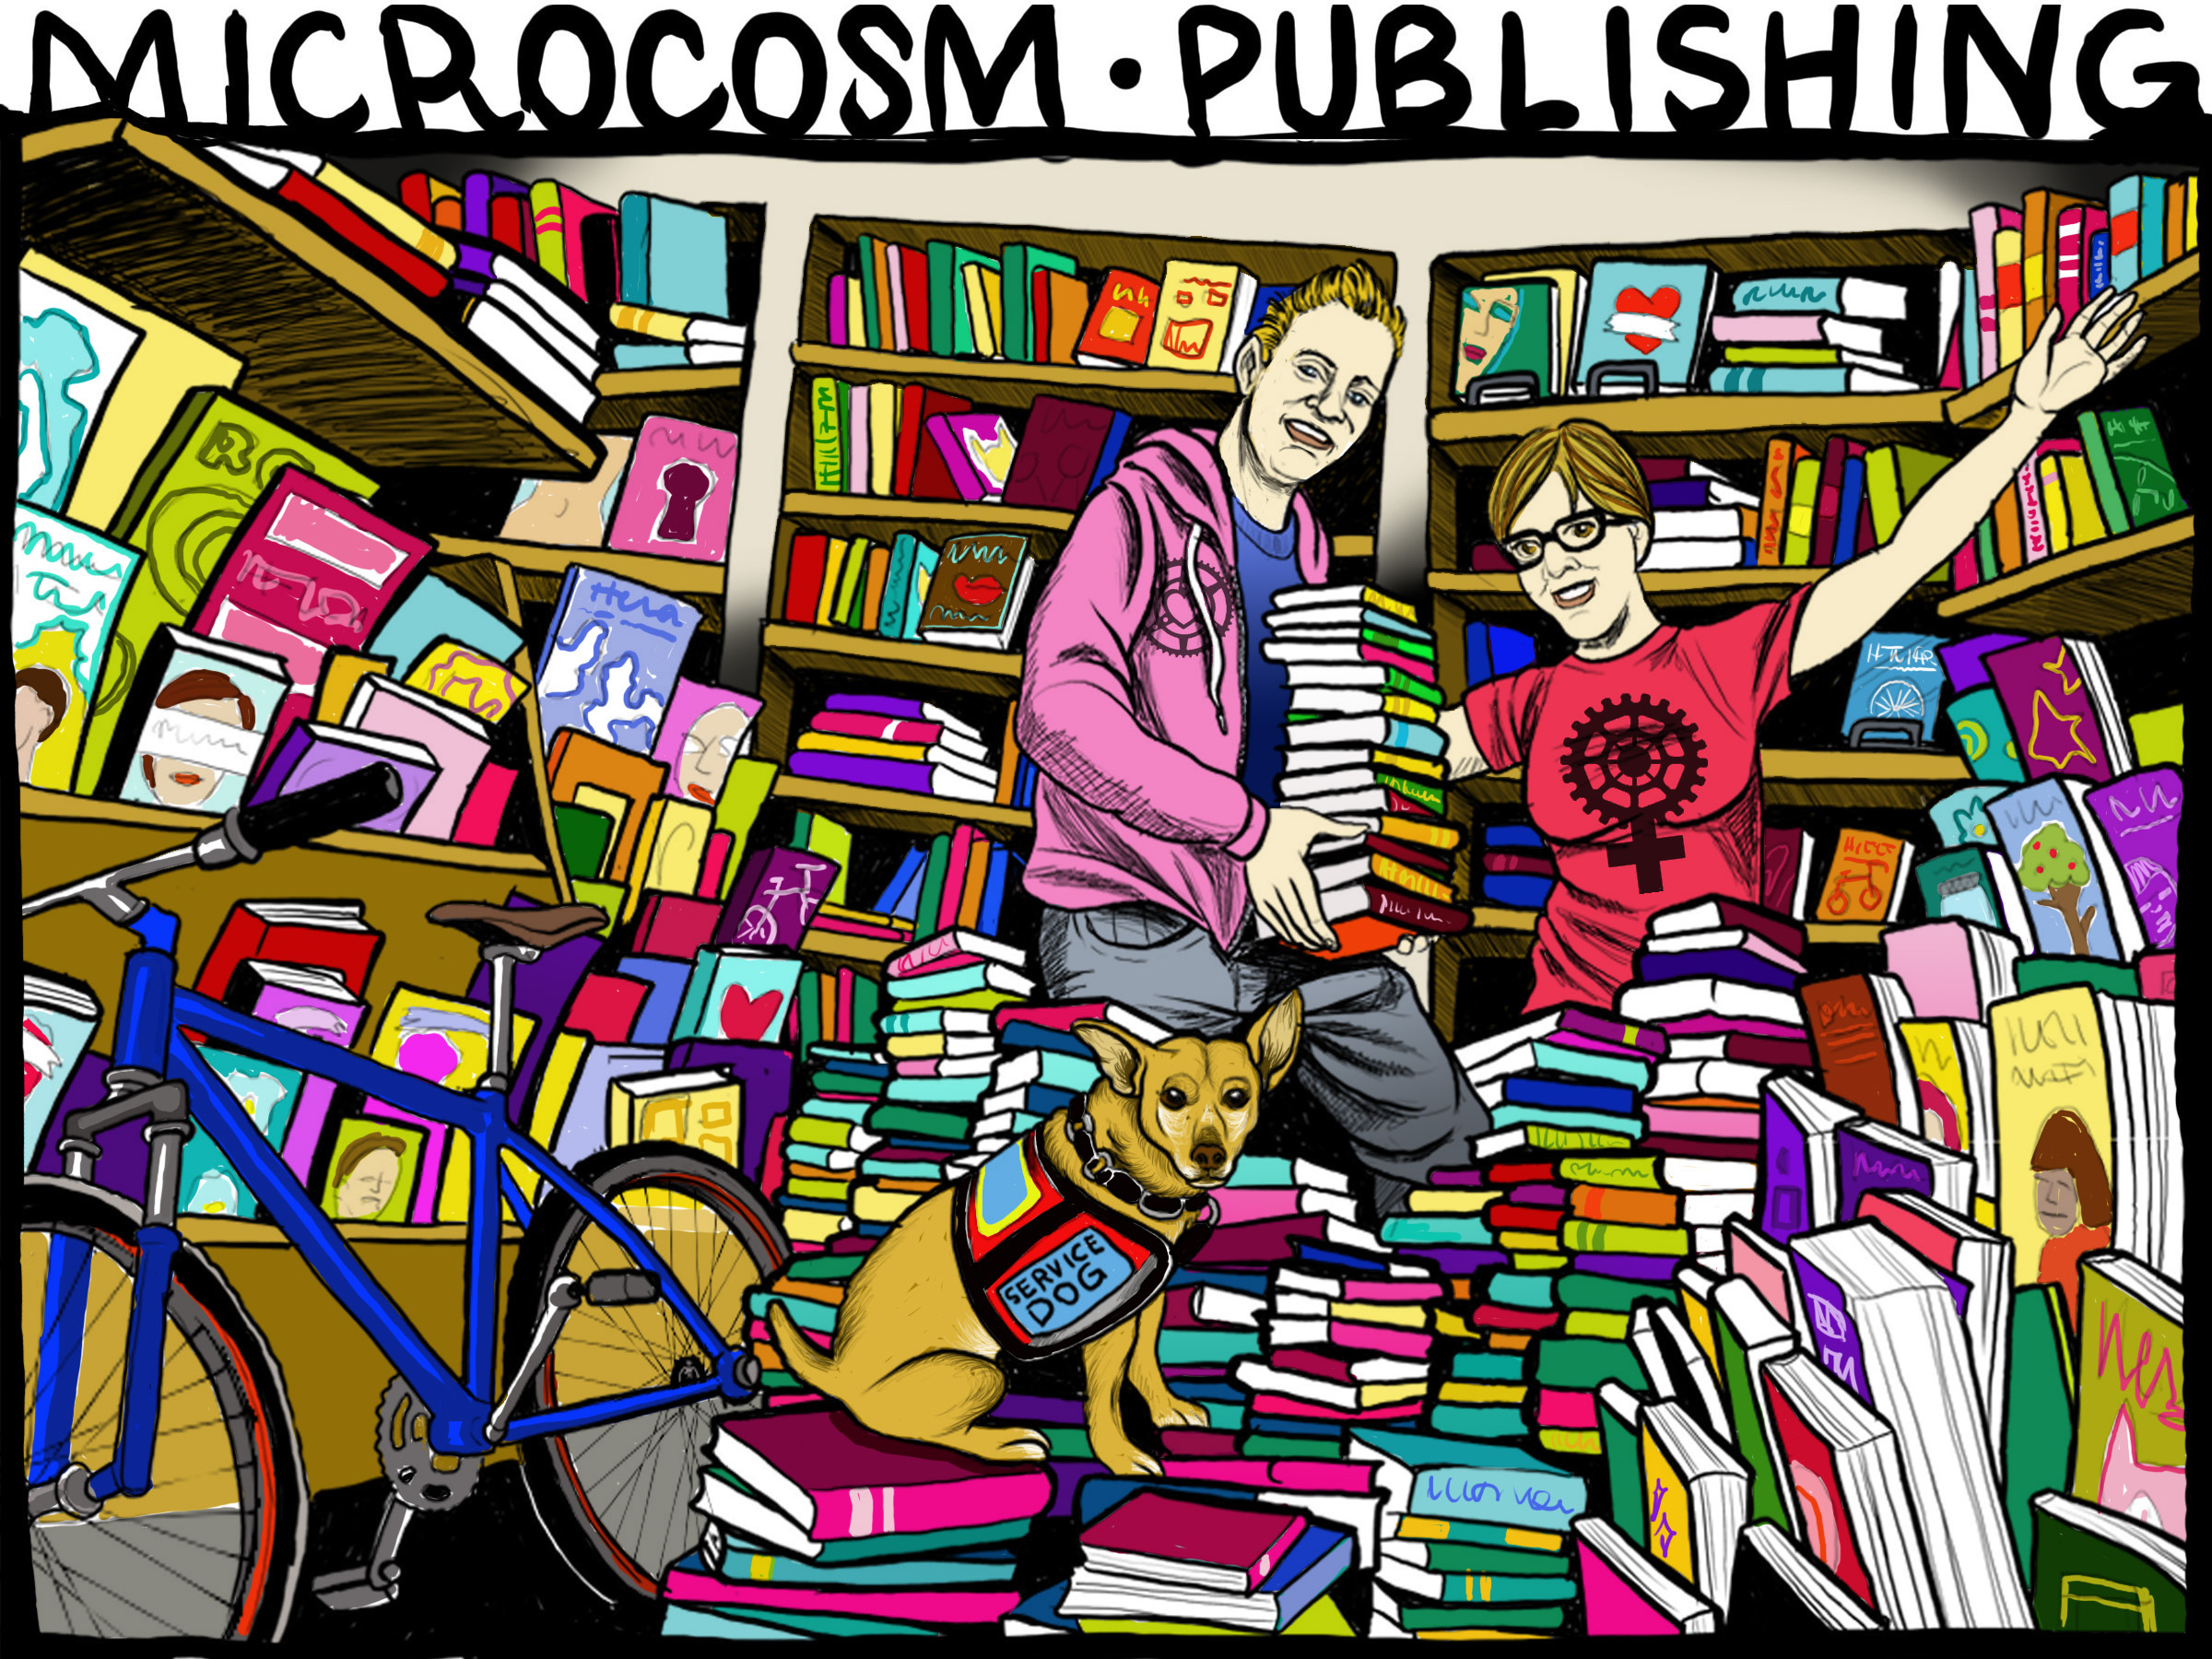 Microcosm Publishing of Portland